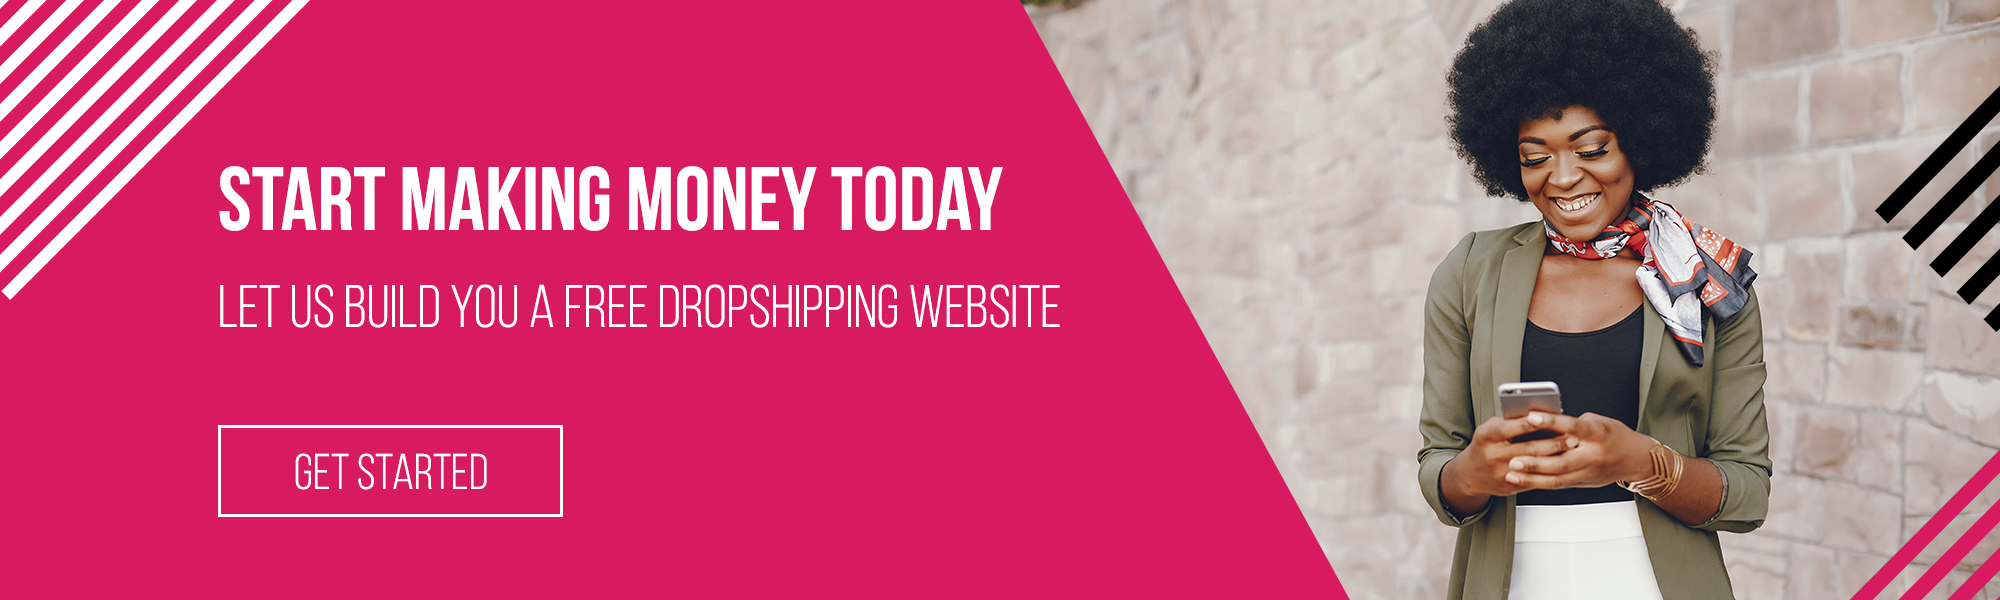 Start Your Dropshipping Business